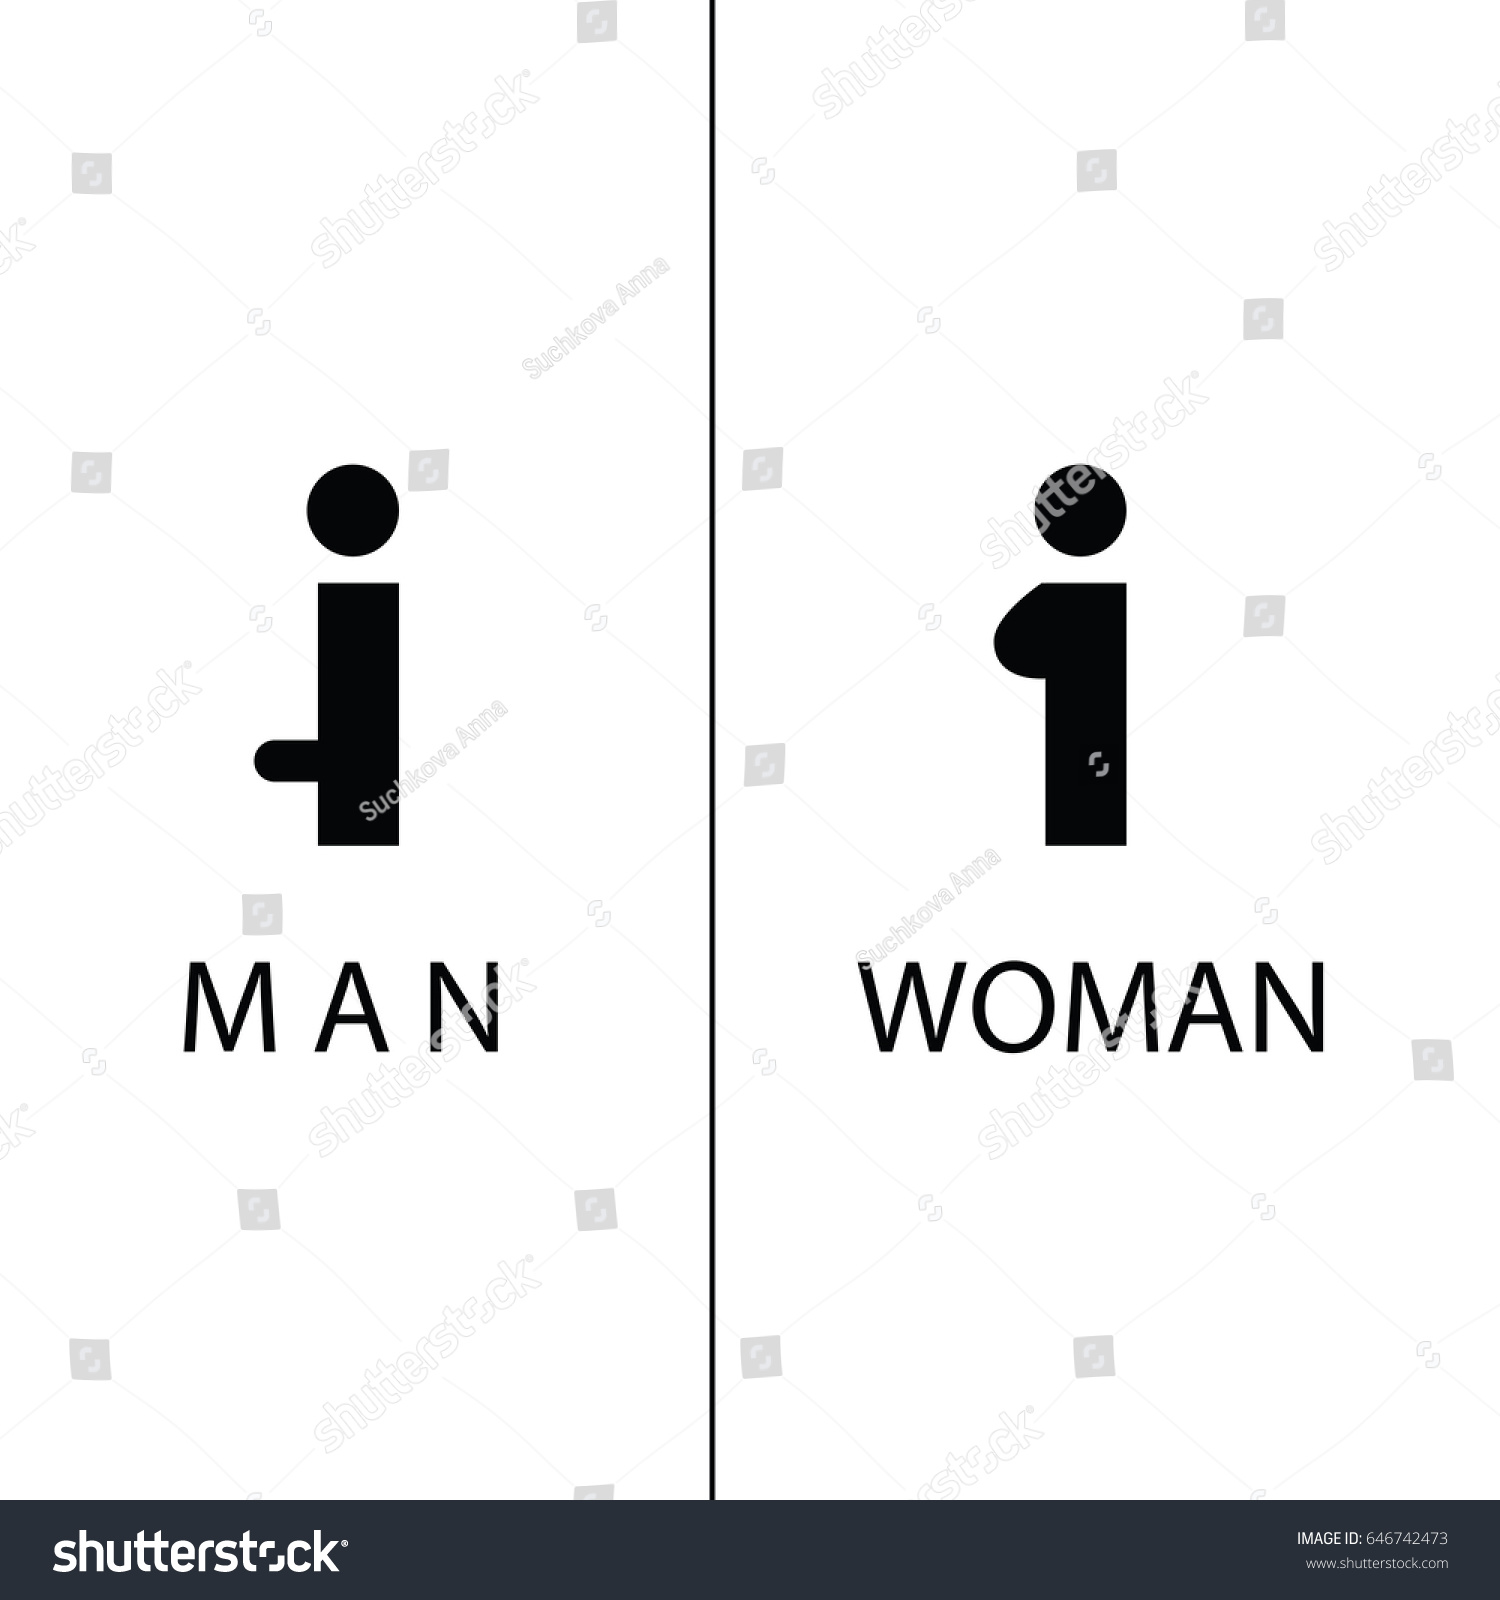 Bathroom Sign Vector Style wc icon toilet sign pure funny stock vector 646742473 - shutterstock